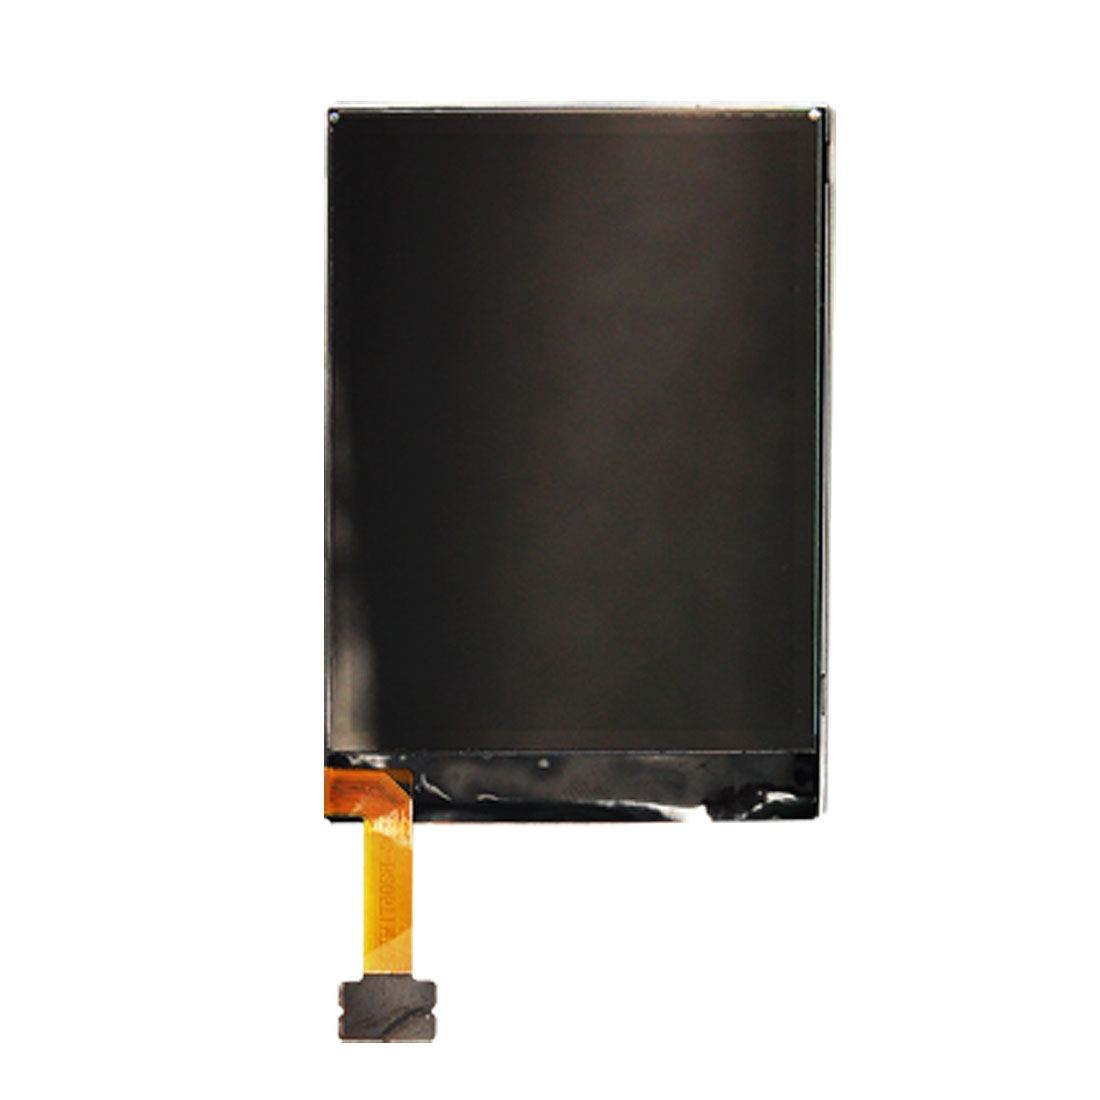 Phone LCD Screen Display Replacement for Nokia N75 N81